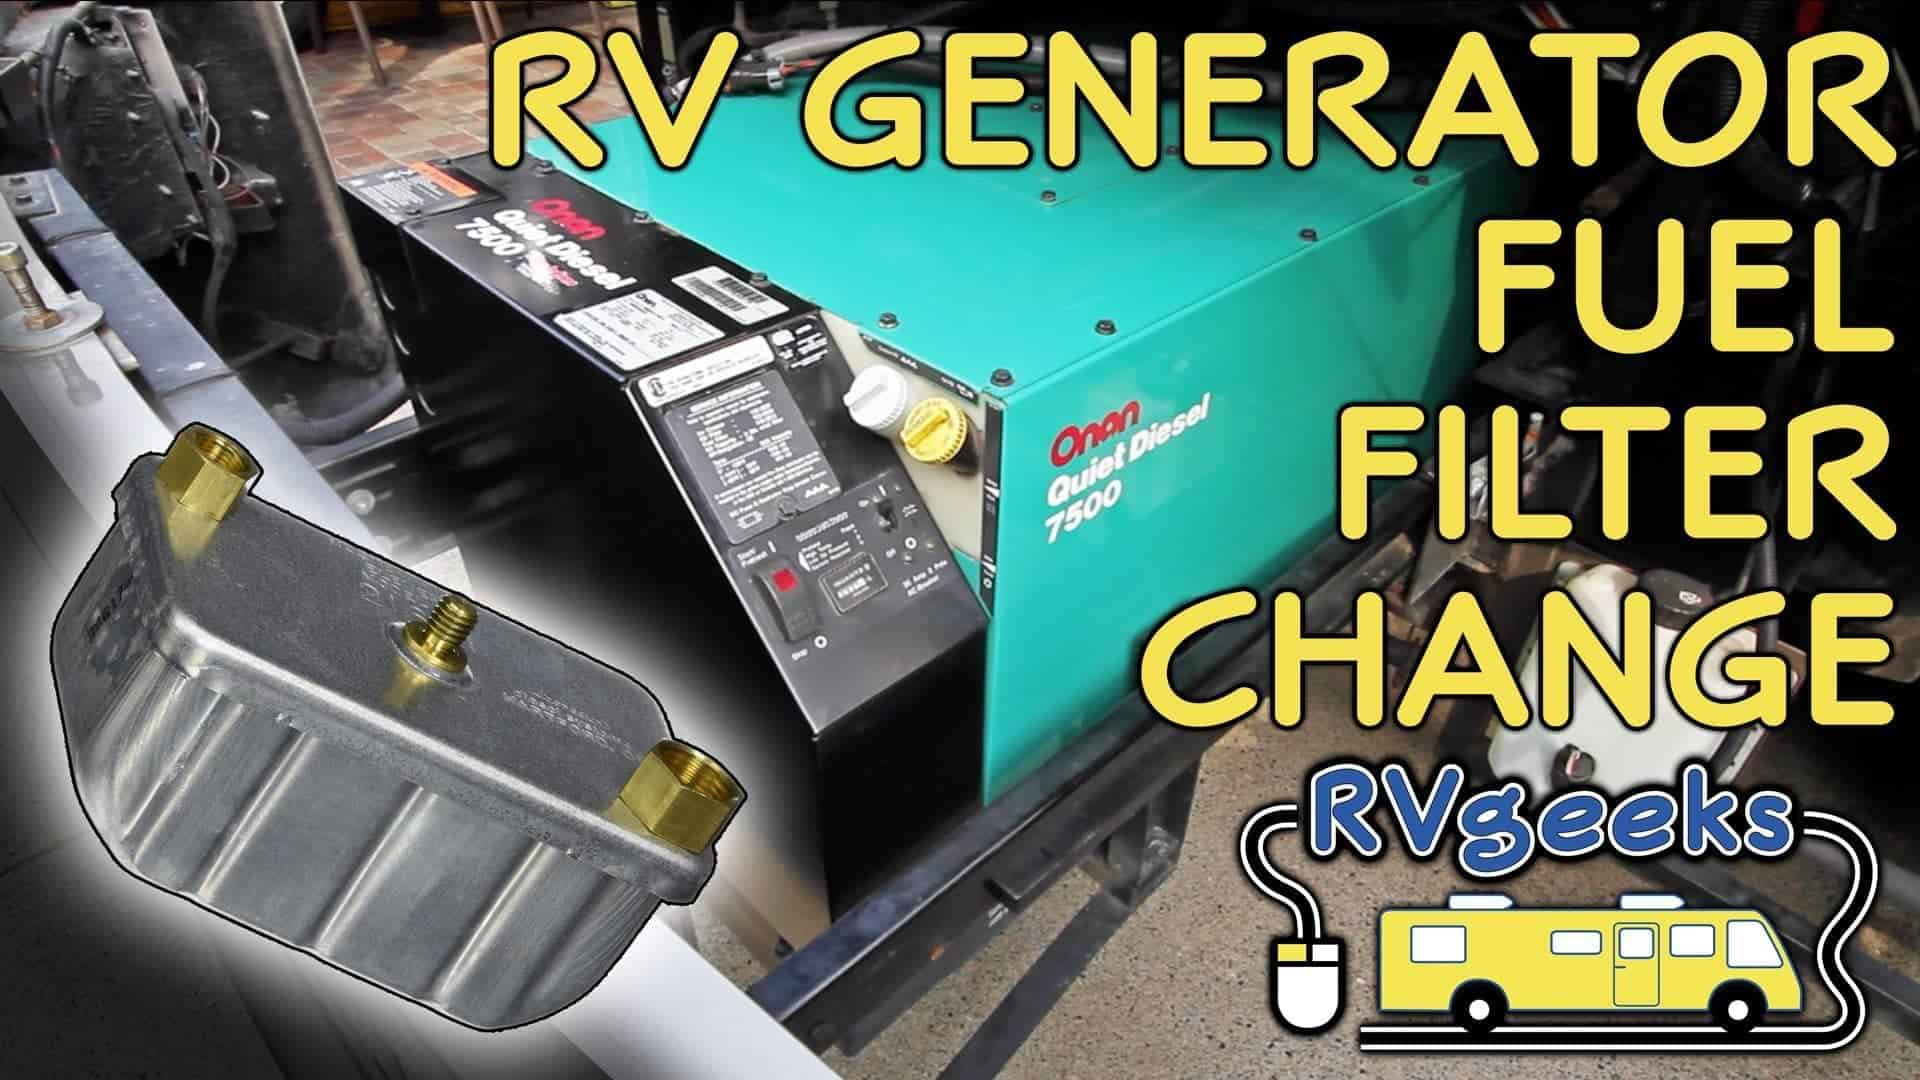 Onan RV Generator Maintenance: Replacing The Fuel Filter